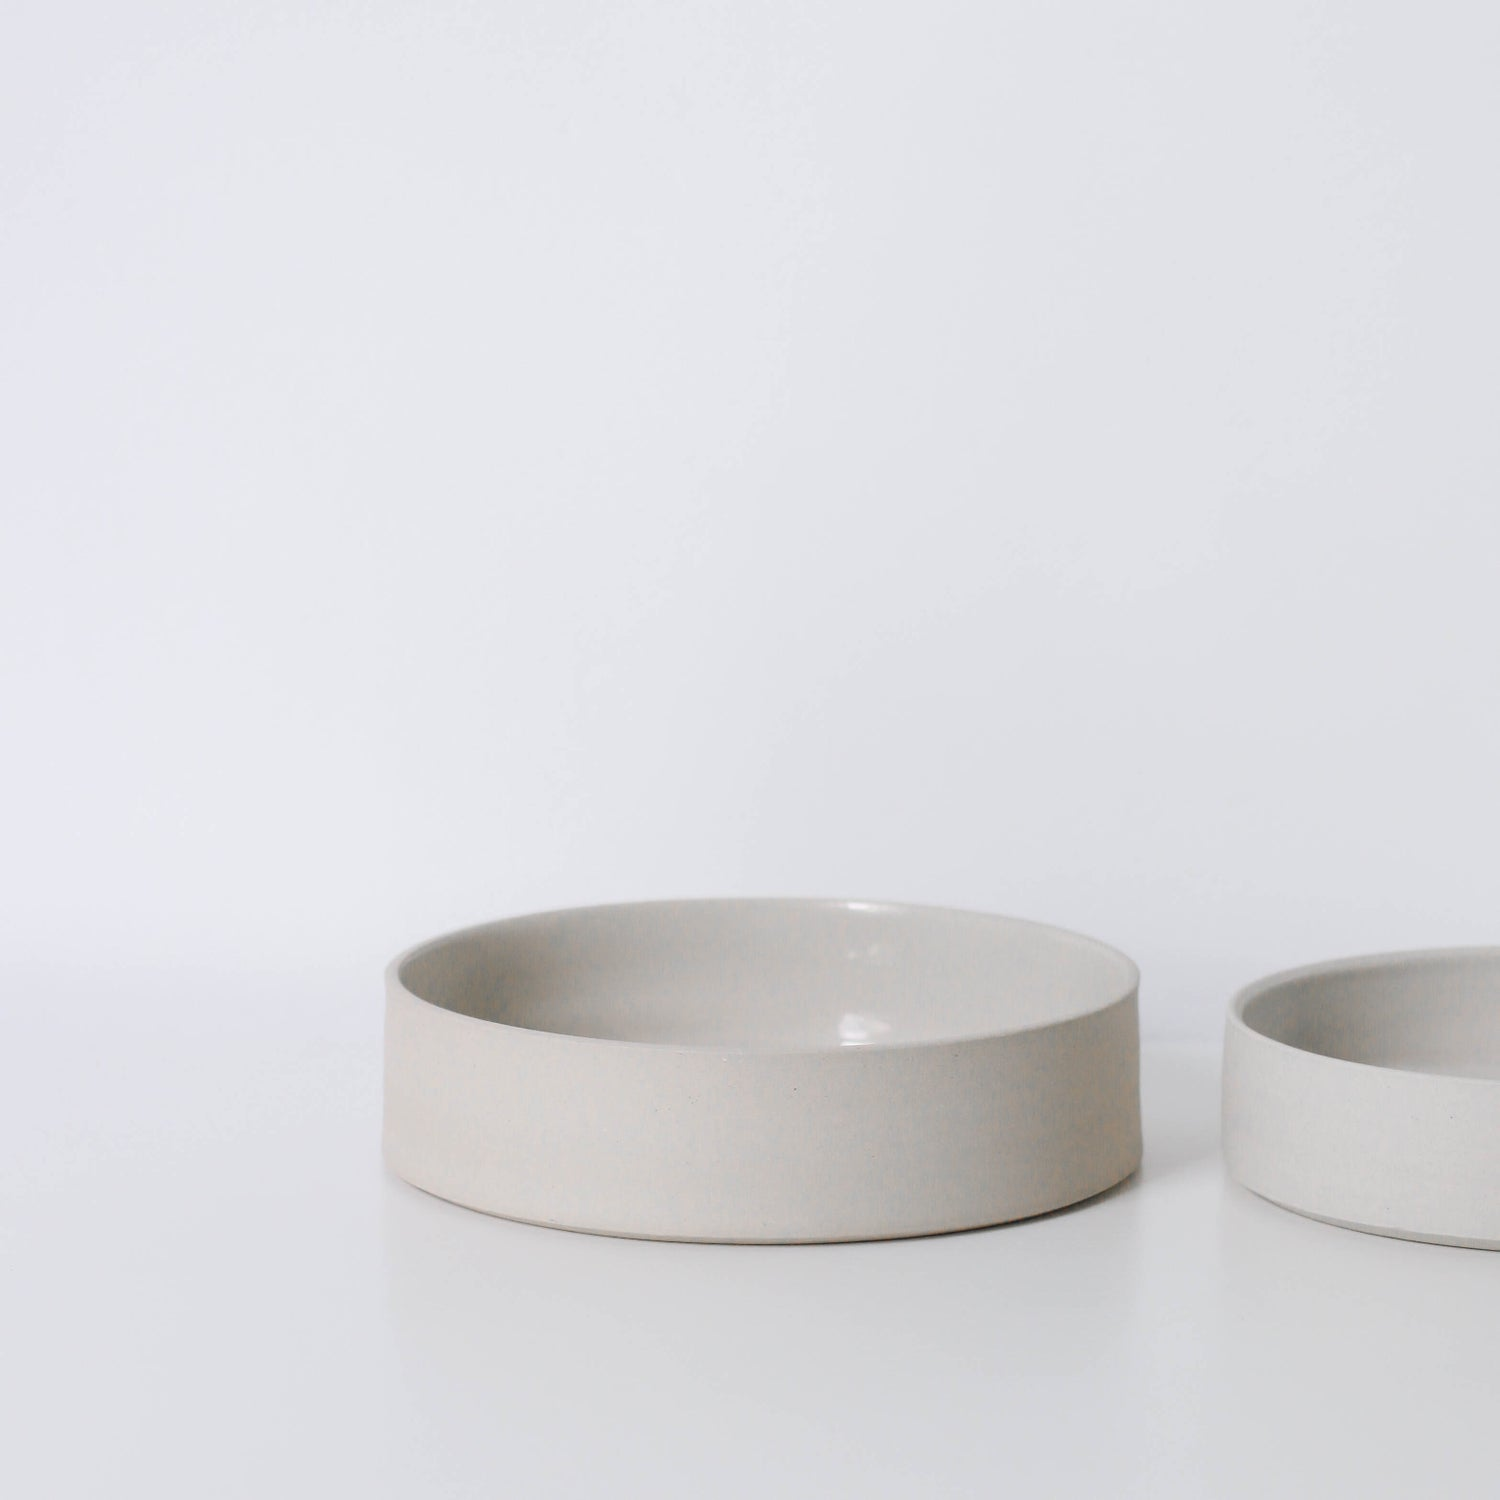 Image of Pair of Serving Bowls #12